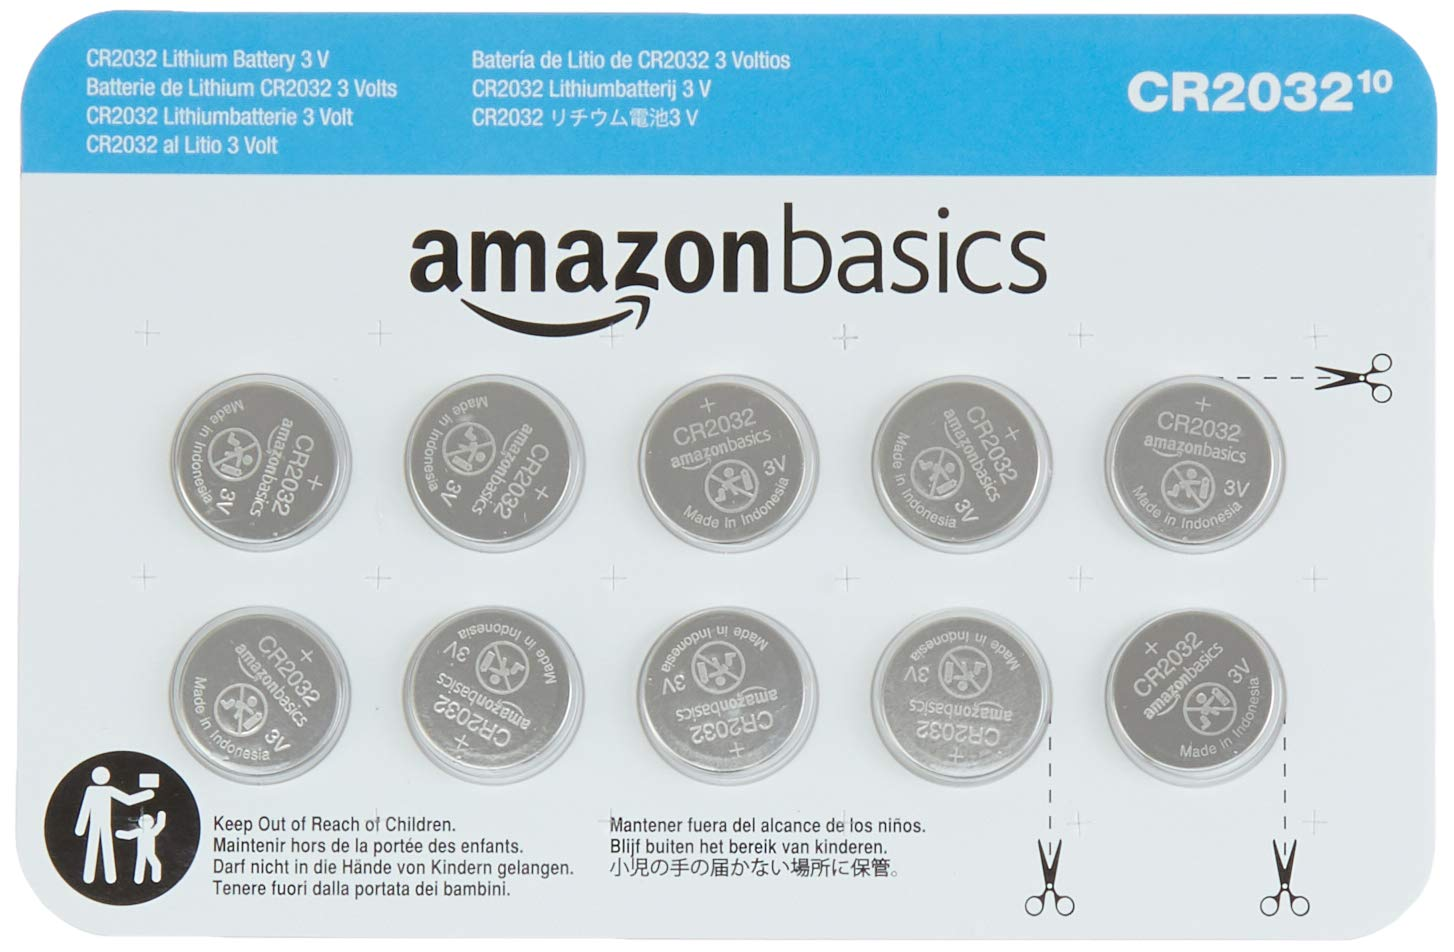 AmazonBasics CR2032 3 Volt Lithium Coin Cell Battery - 10-Pack